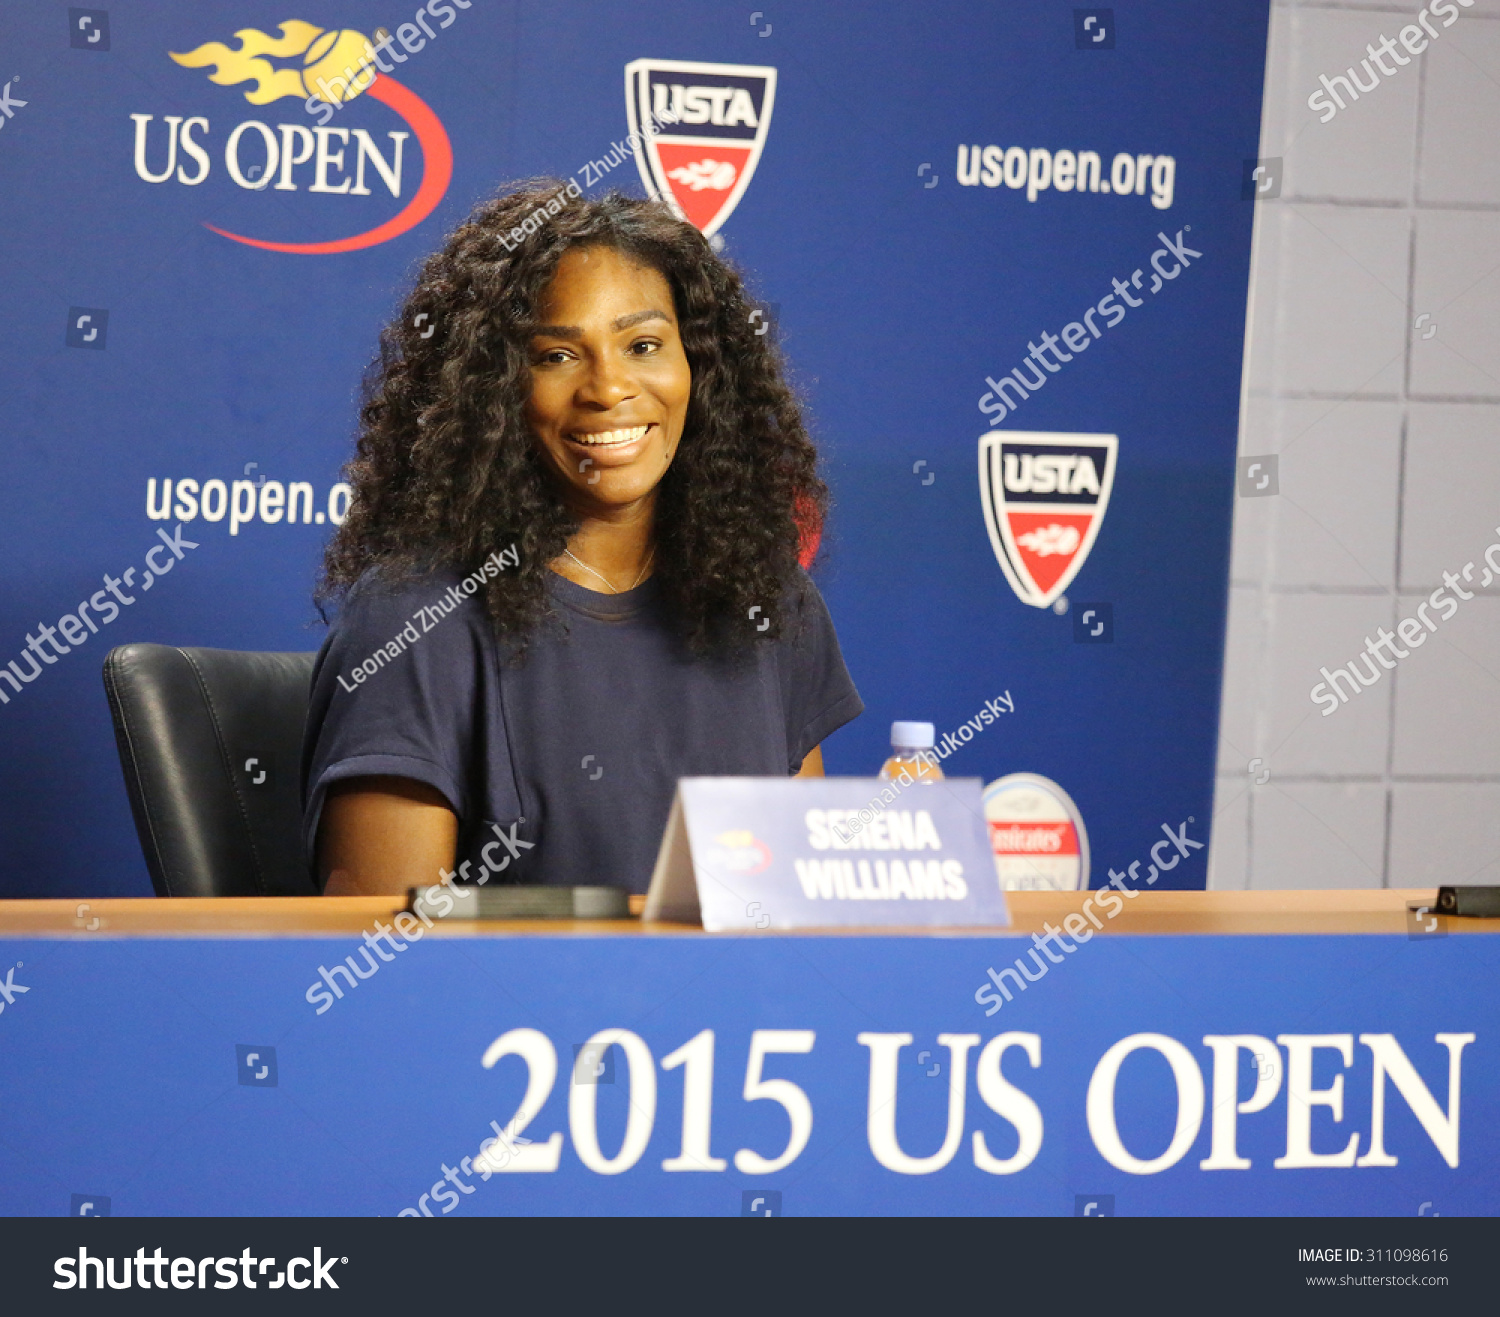 NEW YORK AUGUST 27 2015 Twenty one times Grand Slam champion Serena Williams during press conference at the Billie Jean King National Tennis Center before US Open 2015 tournament in Flushing NY